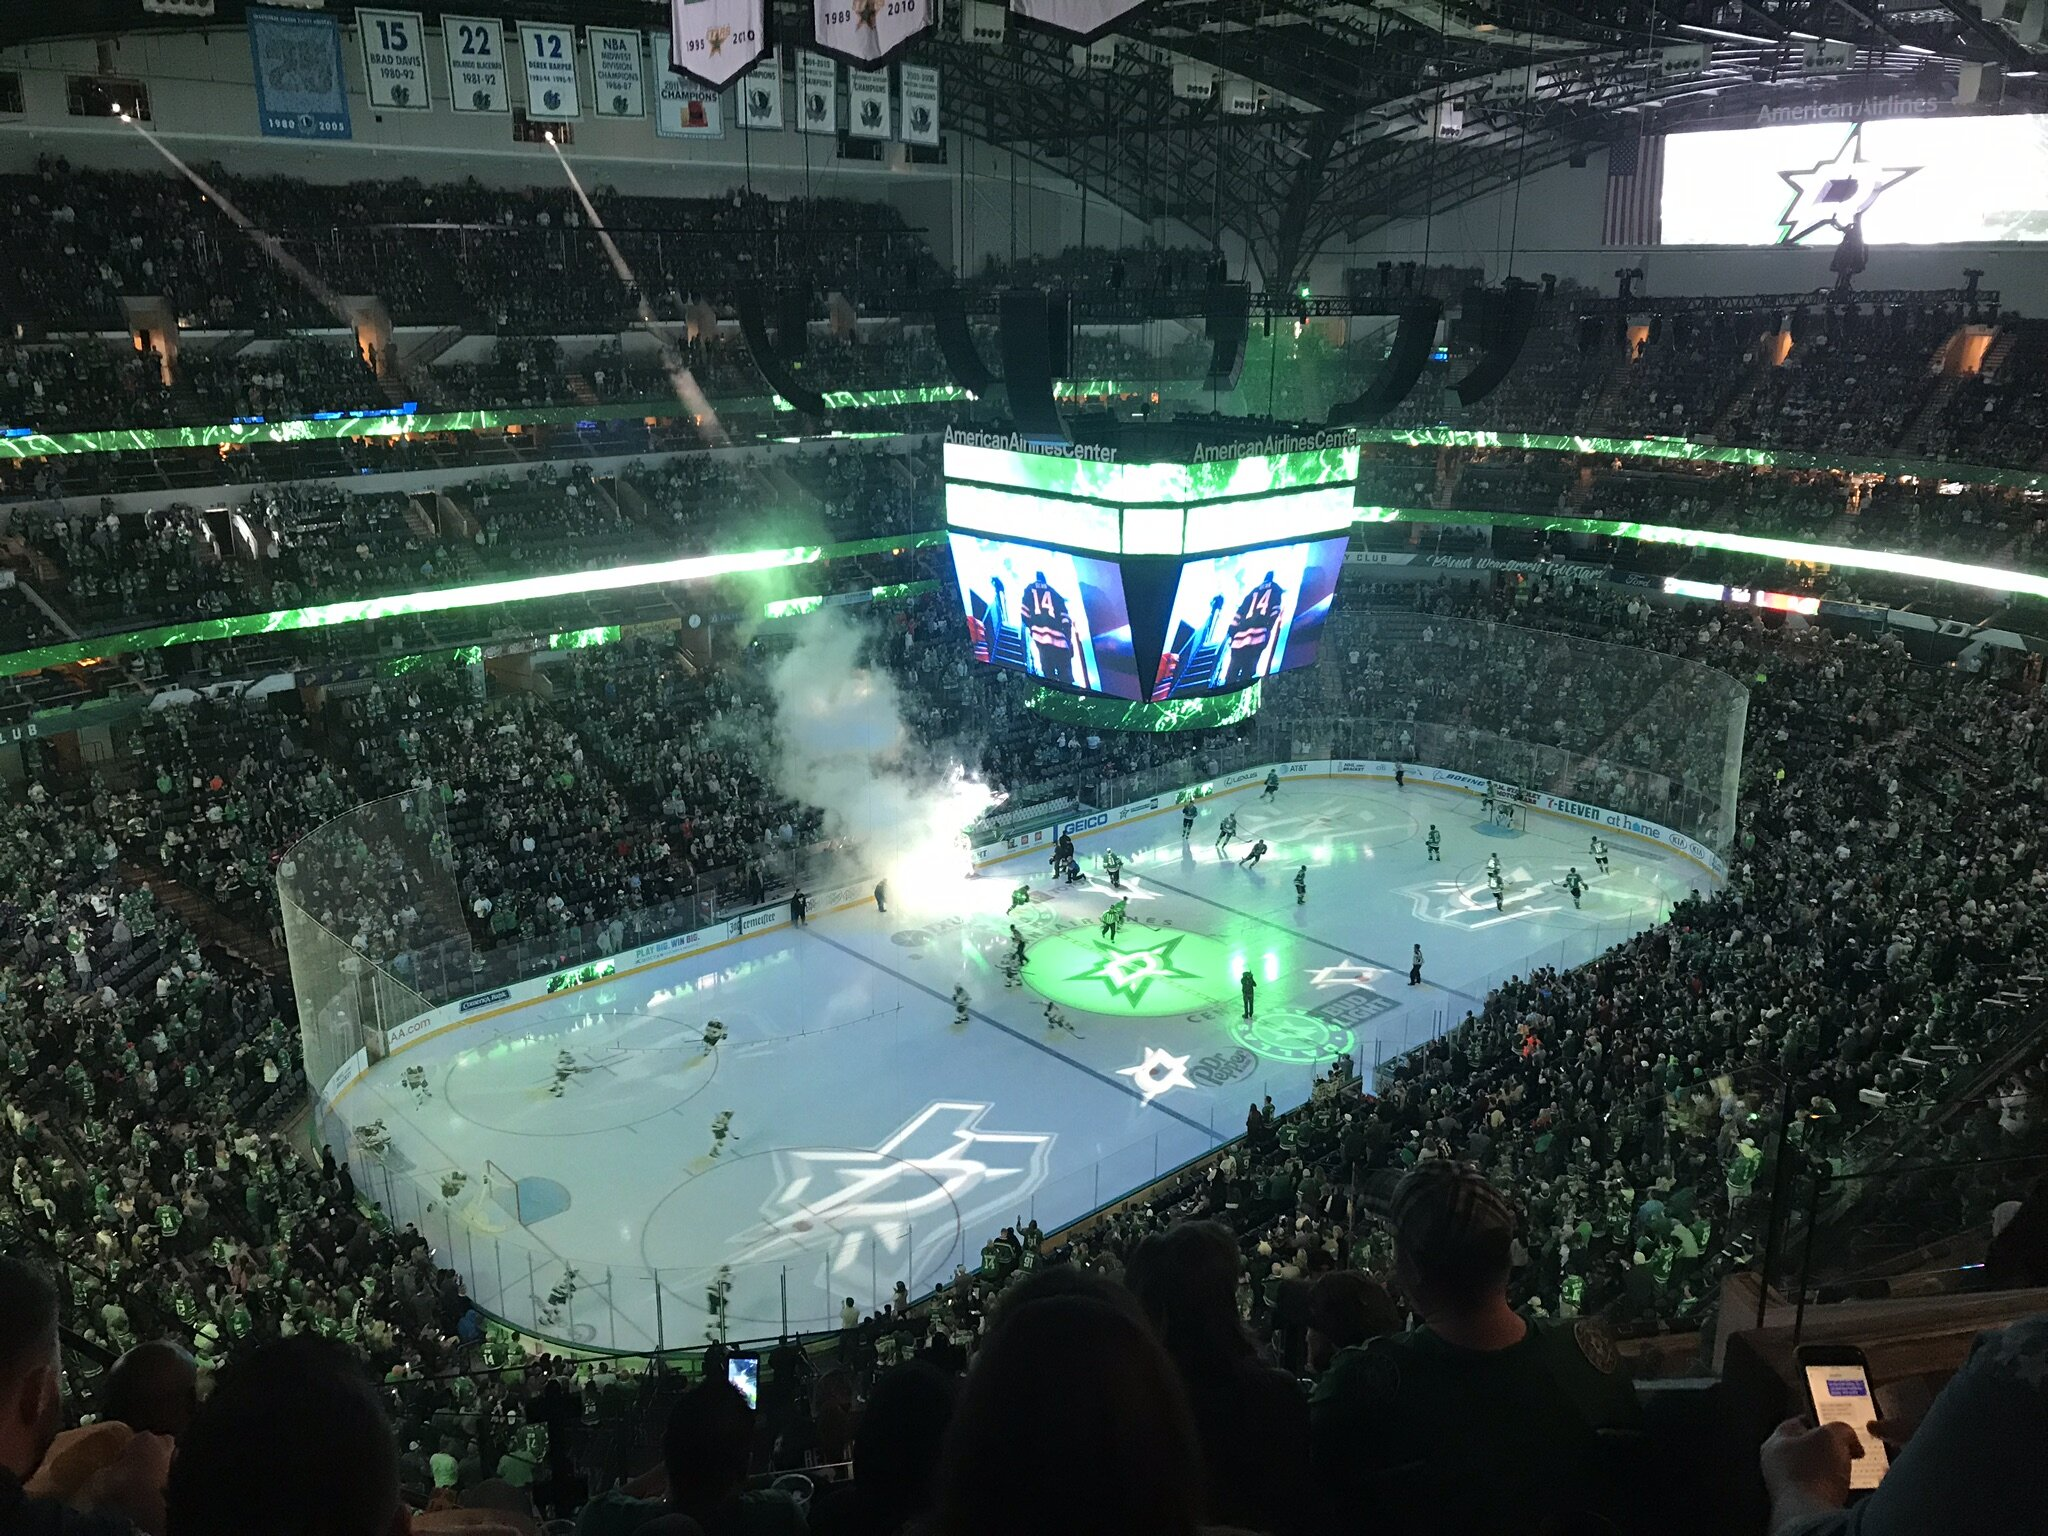 Dallas Stars Ice Hockey.jpeg